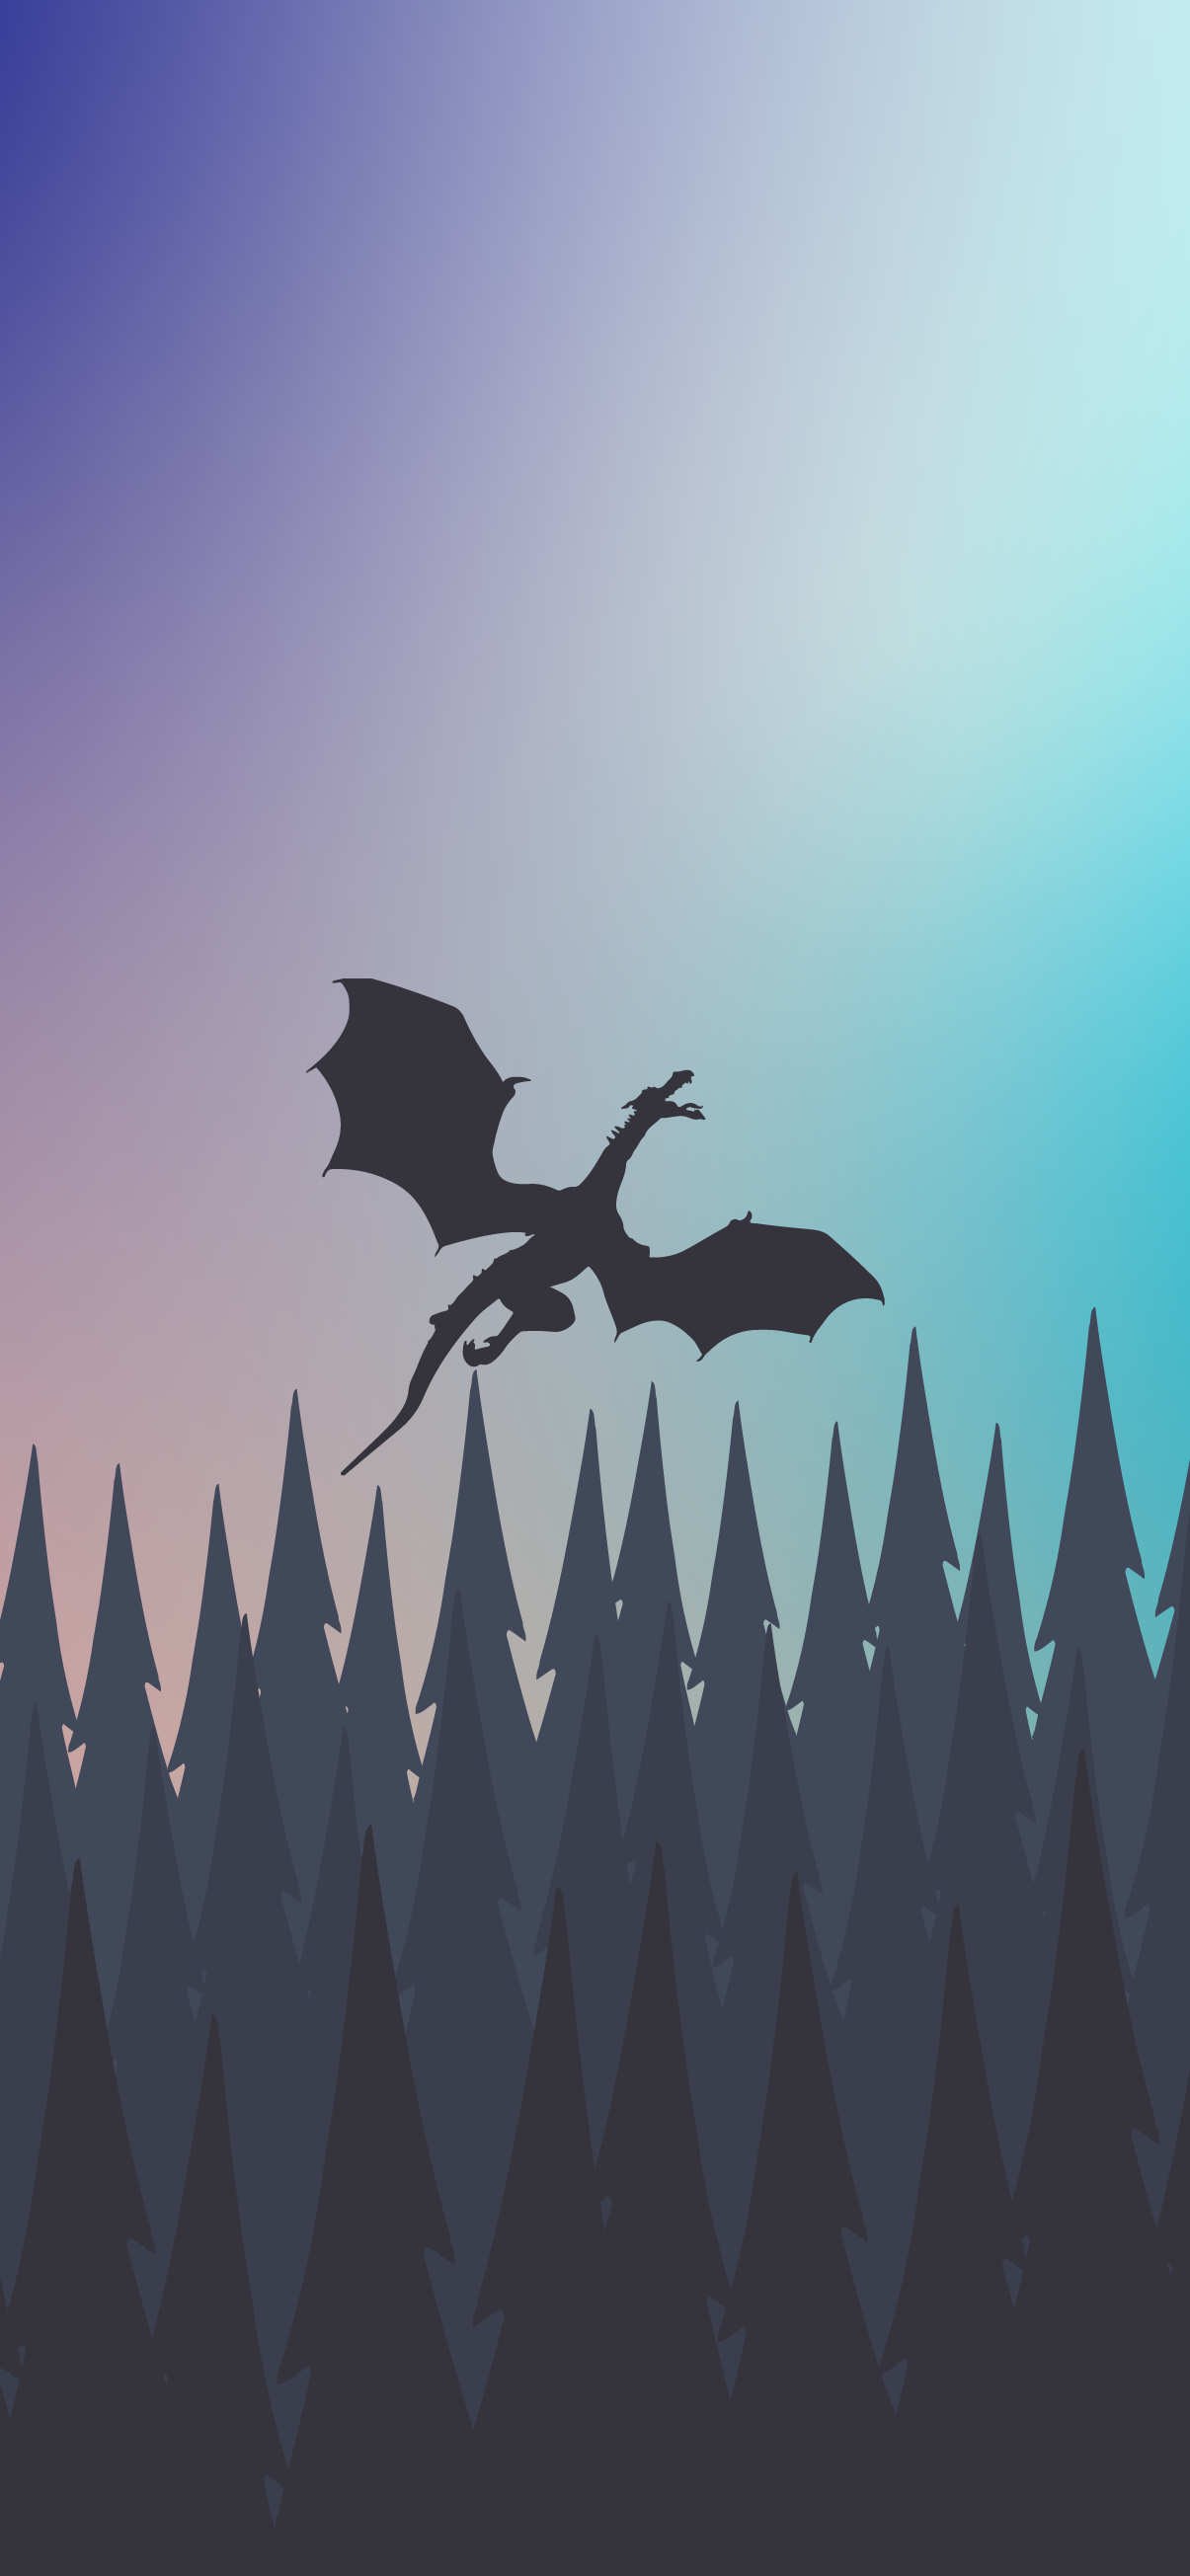 dragon flying above a forest